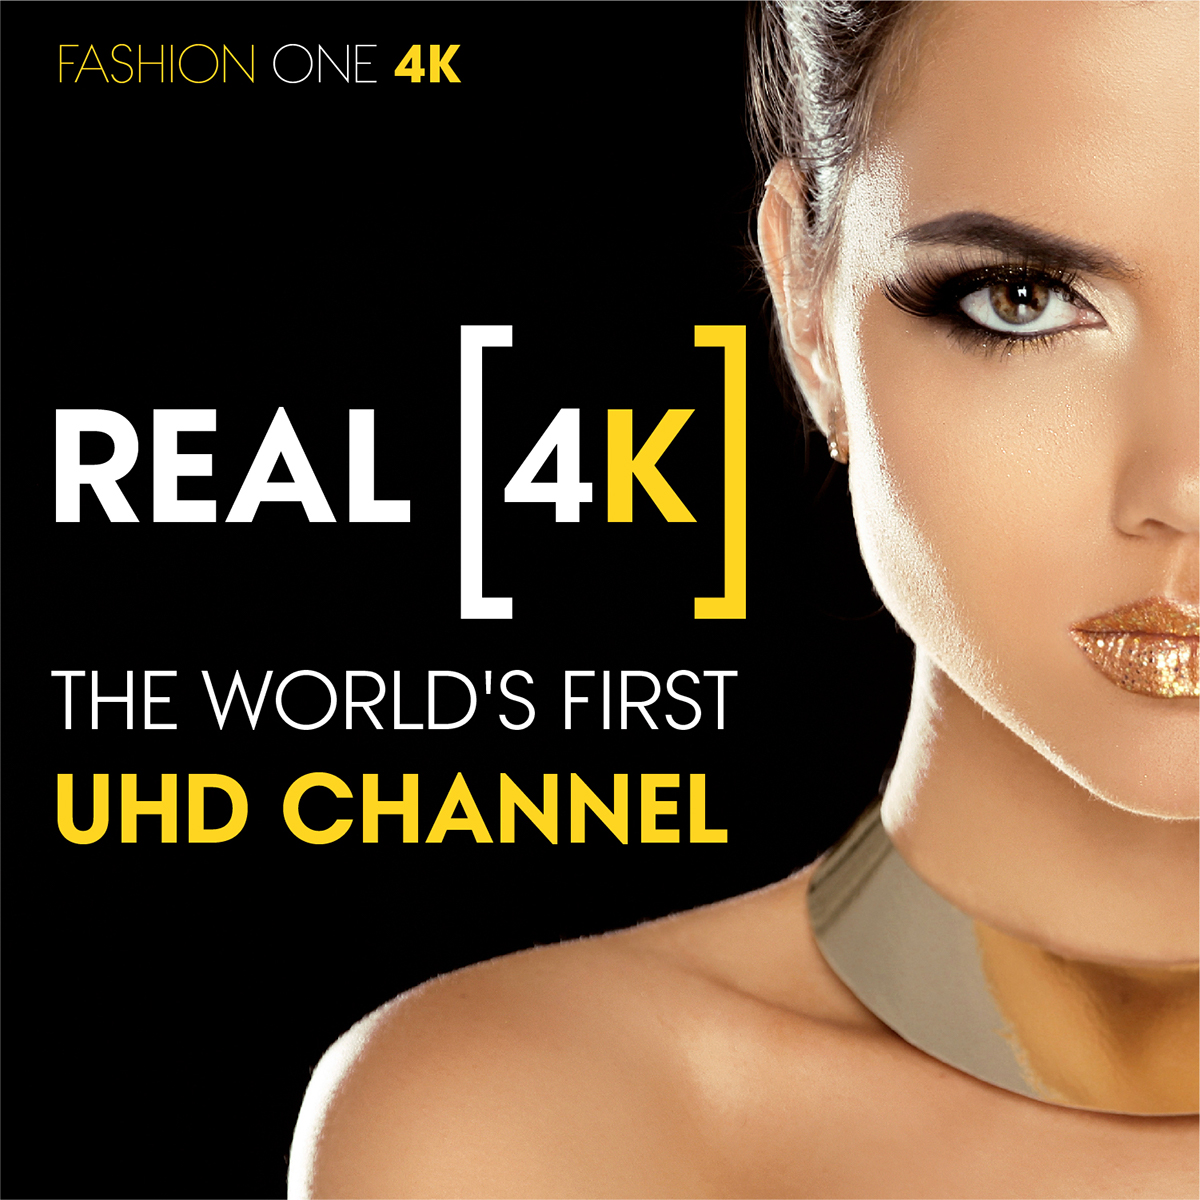 Fashion One 4K